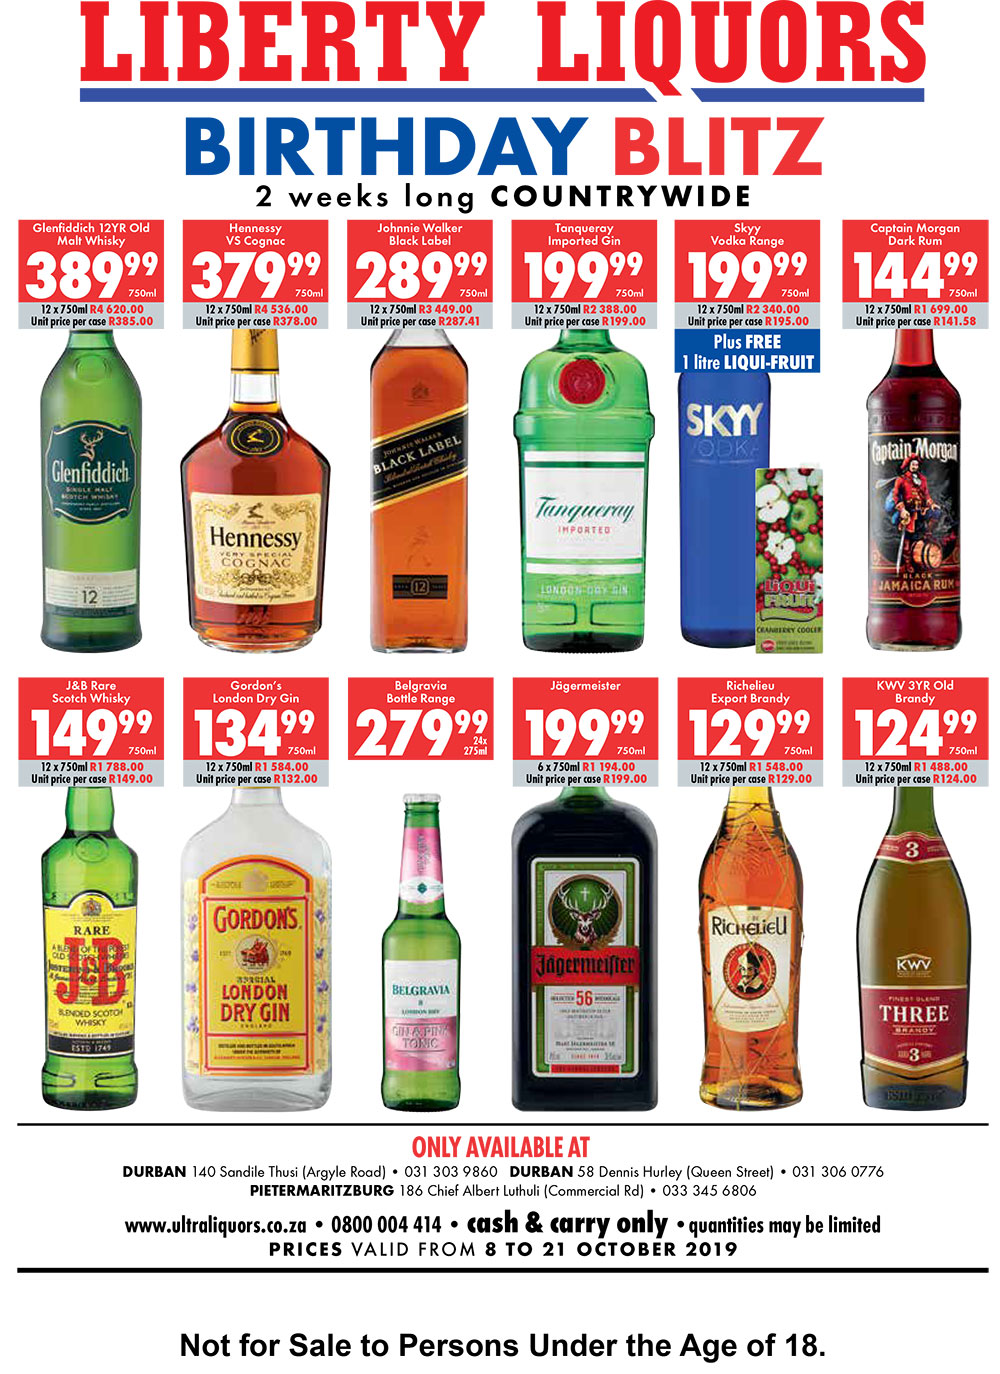 birthday blitz special deals liberty liquors